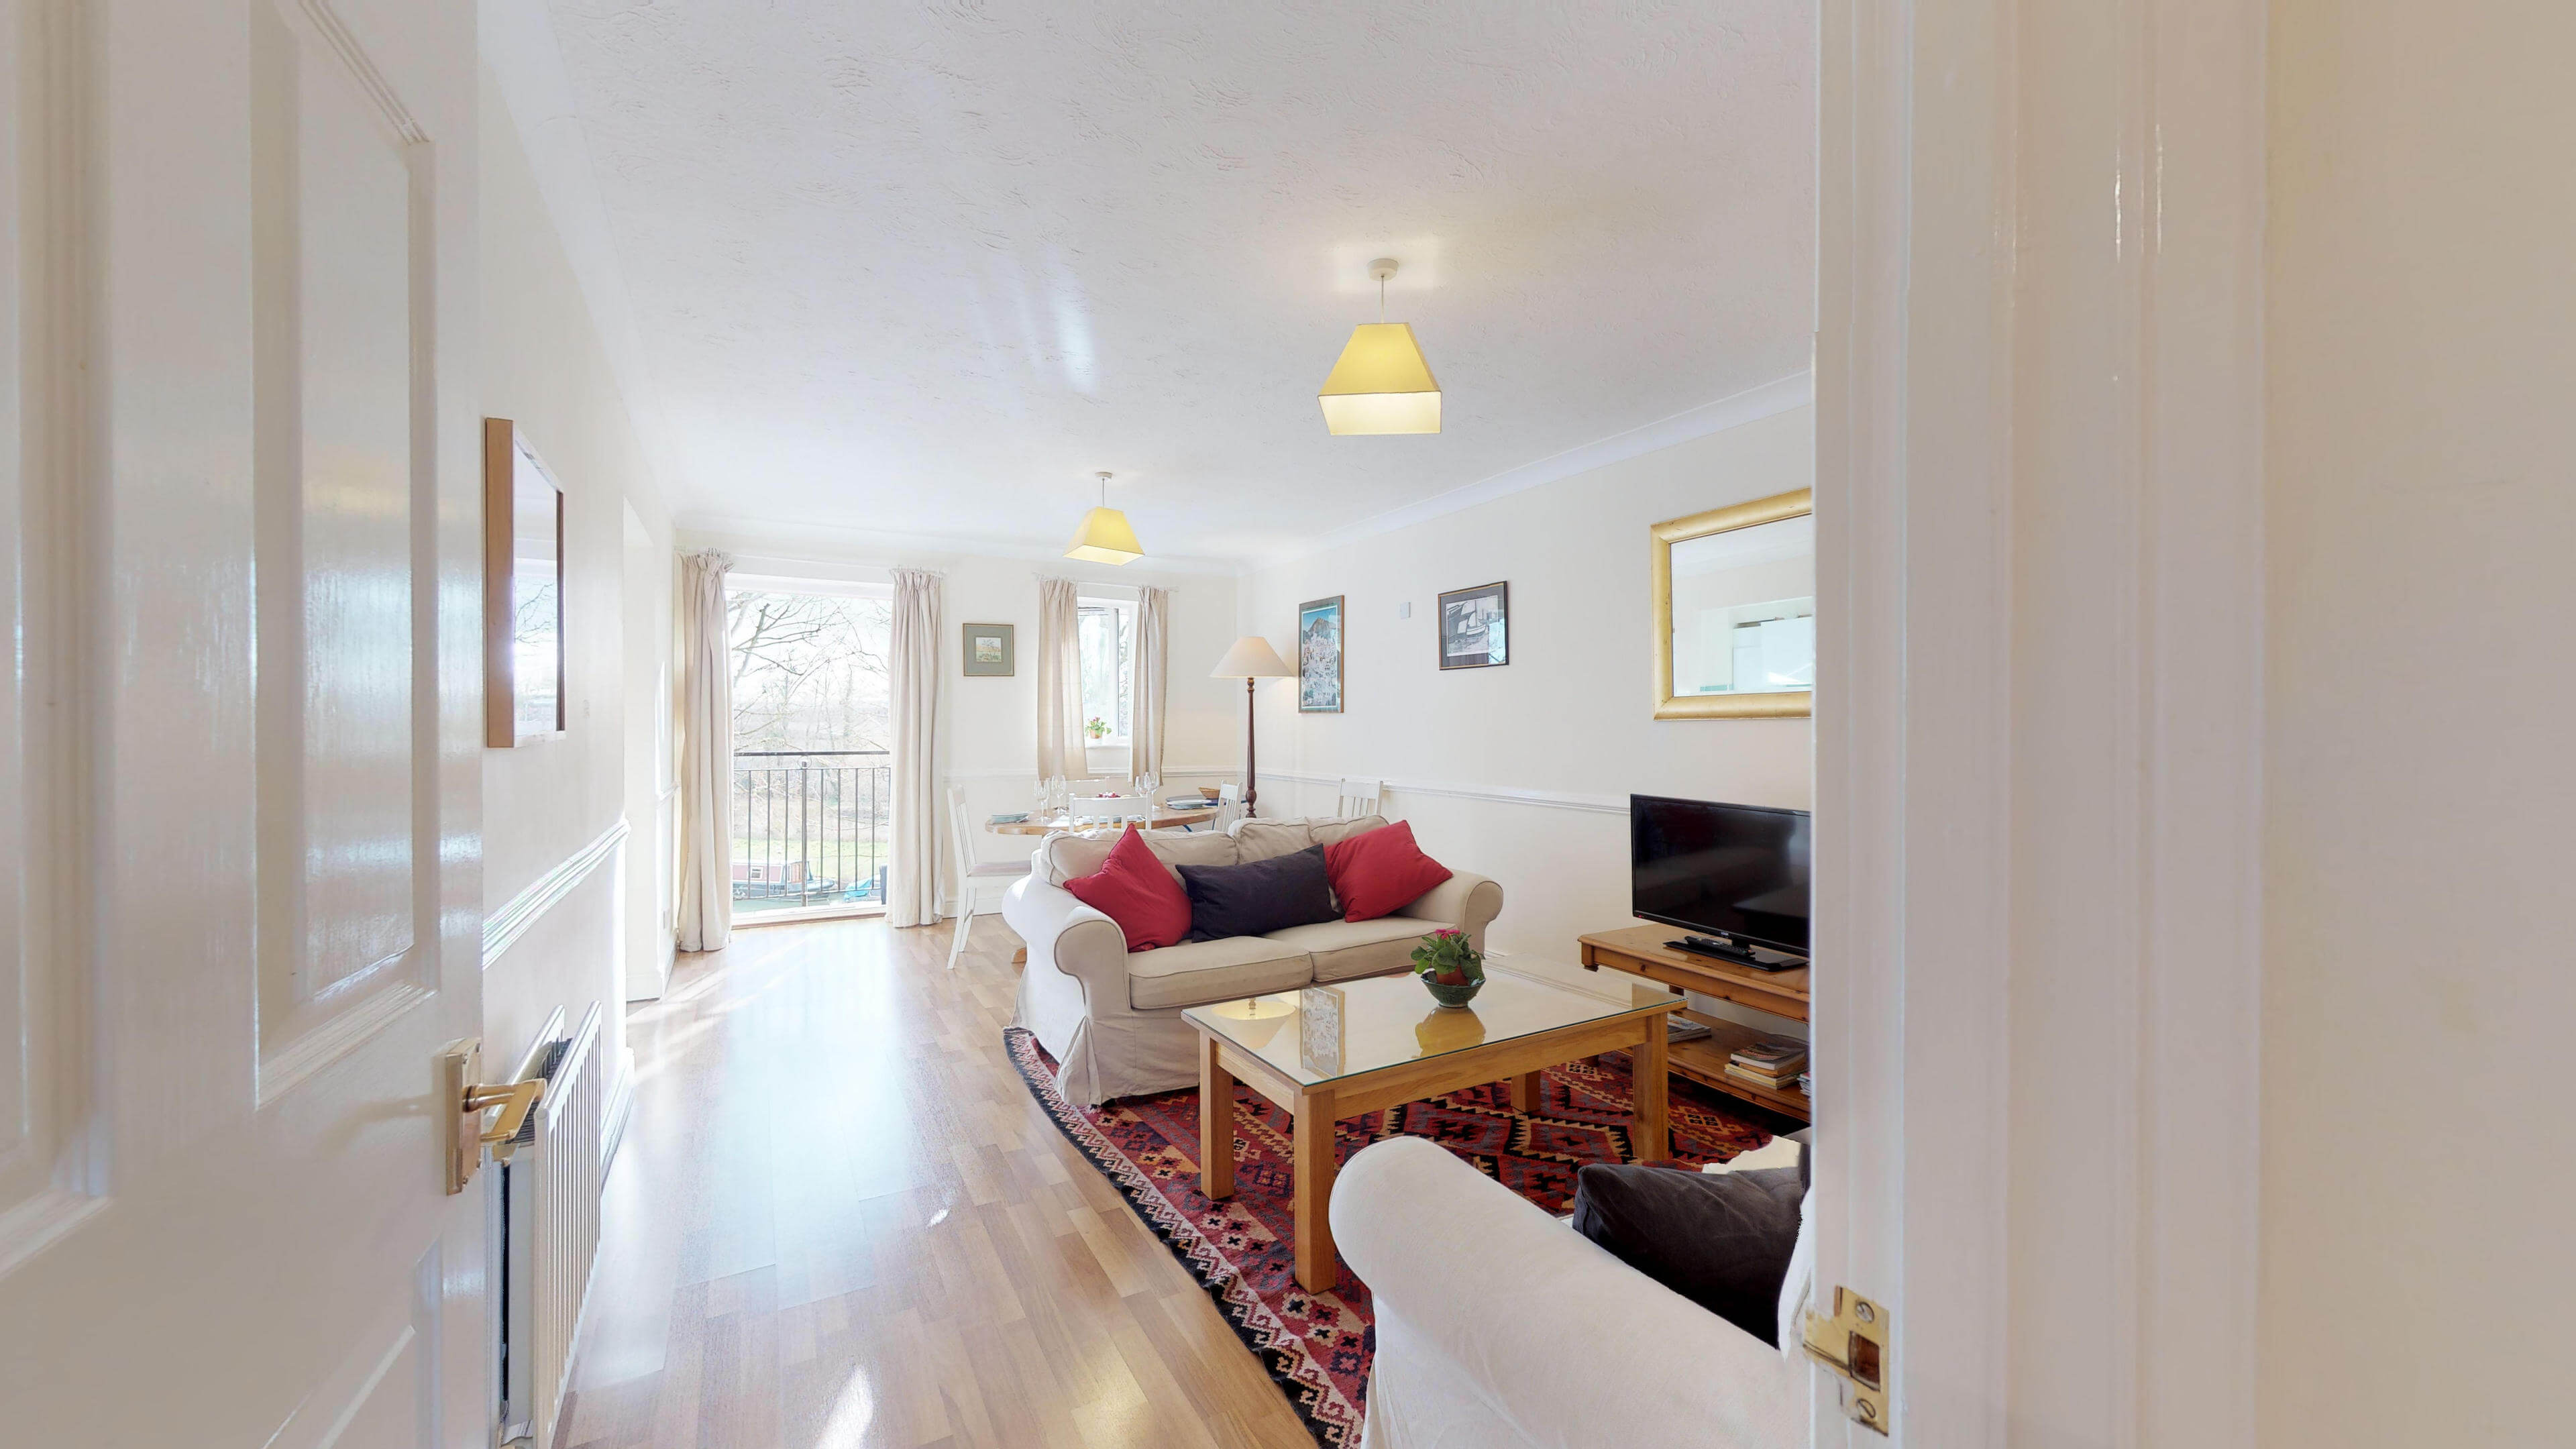 Millbank Oxford City Centre Short Stay Apartment Sleeps 4 Living View